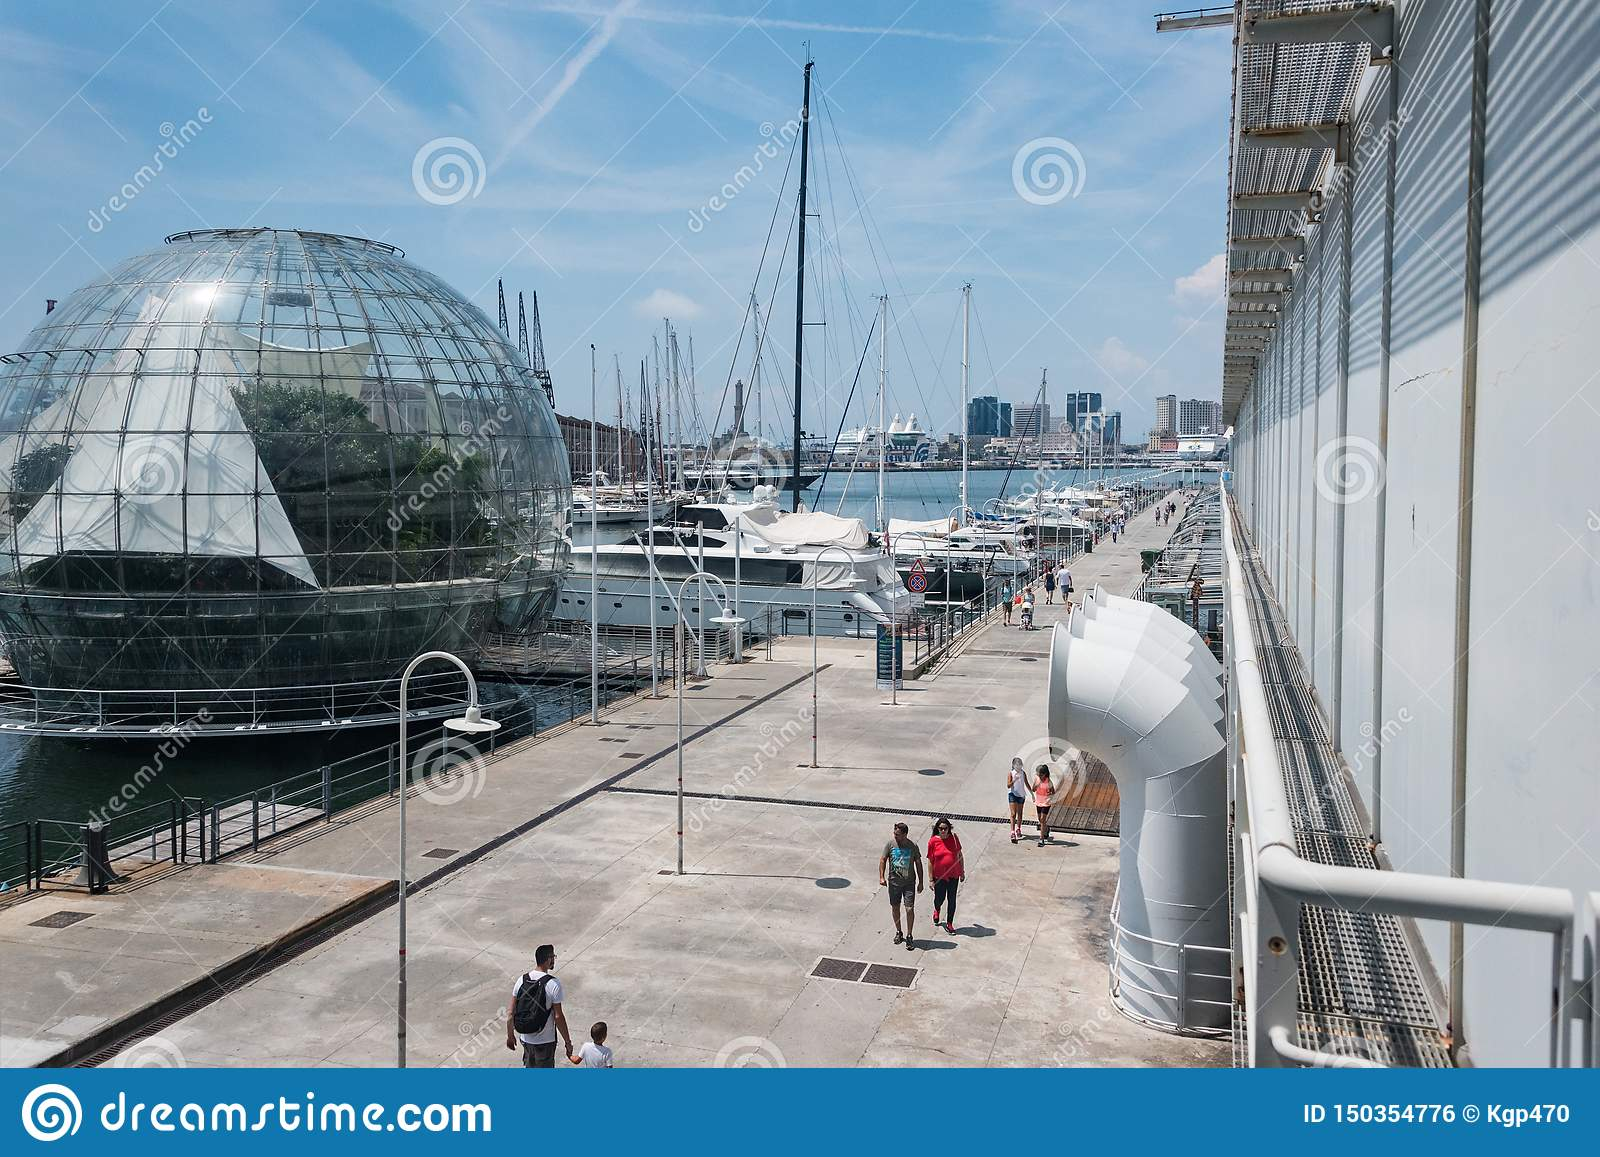 The largest Aquarium in Europe. On the left side - biosphere green house.